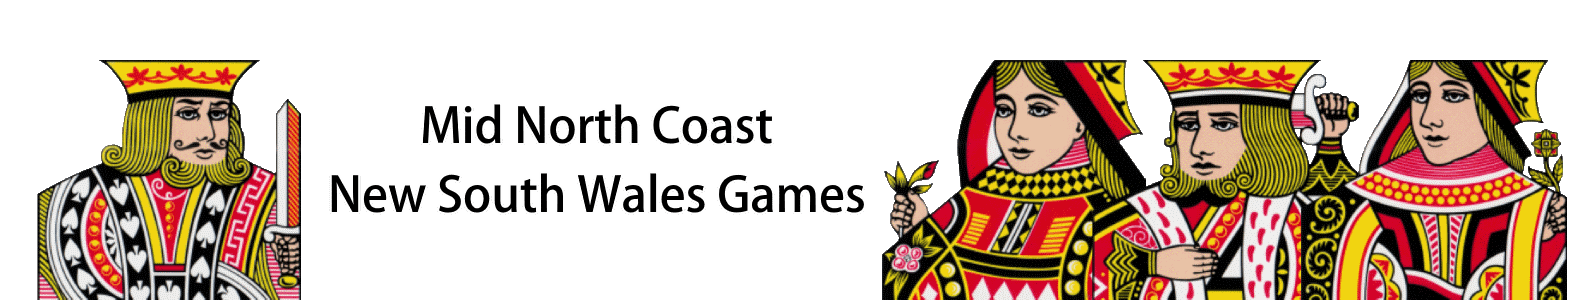 Registering for Mid North Coast games